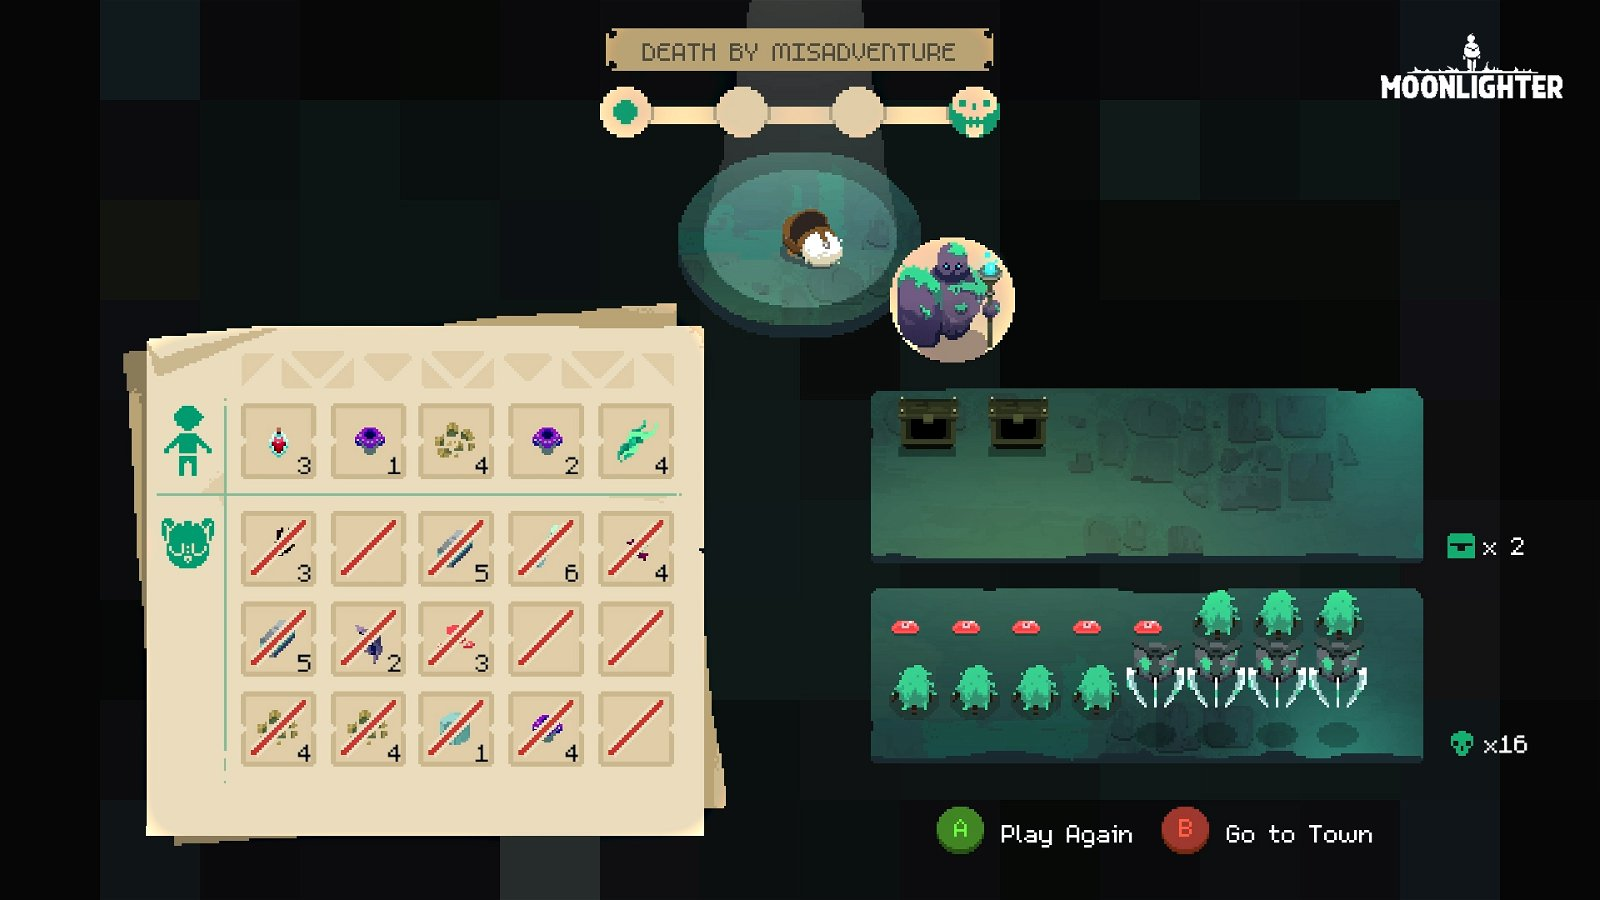 Moonlighter Review - Fire Sale 5